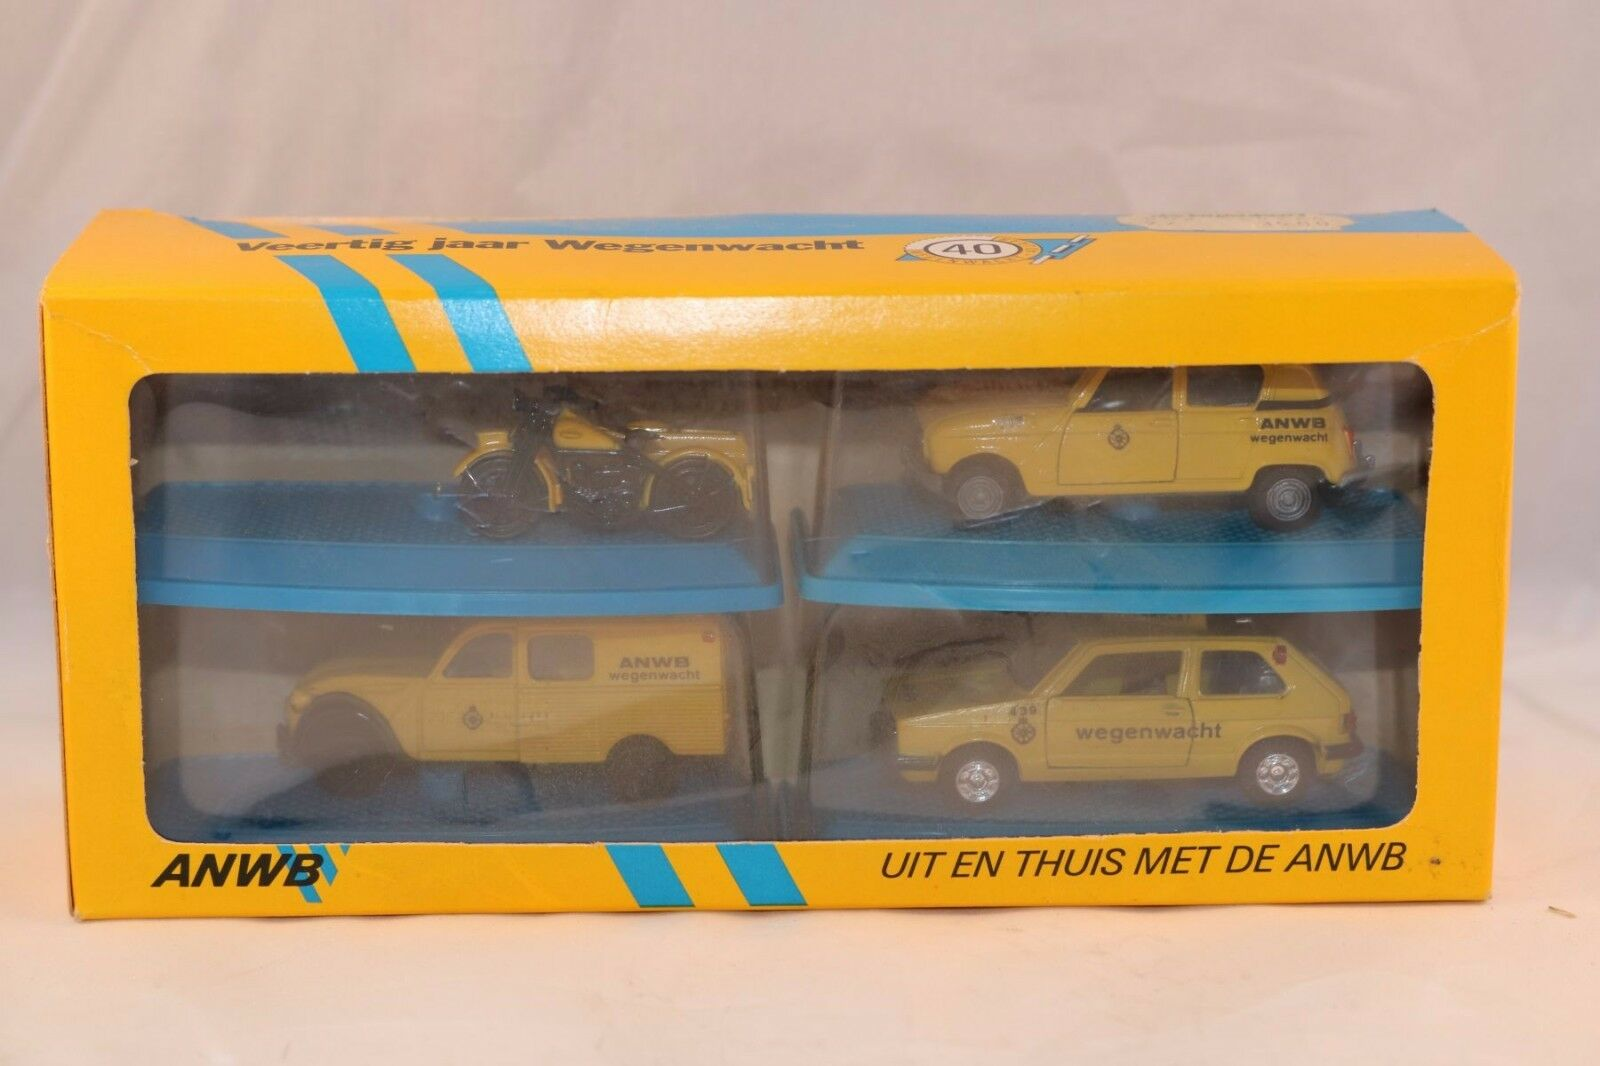 Artec Special made for 40 jaar wegenwacht  ANWB  1:66 perfect mint in box